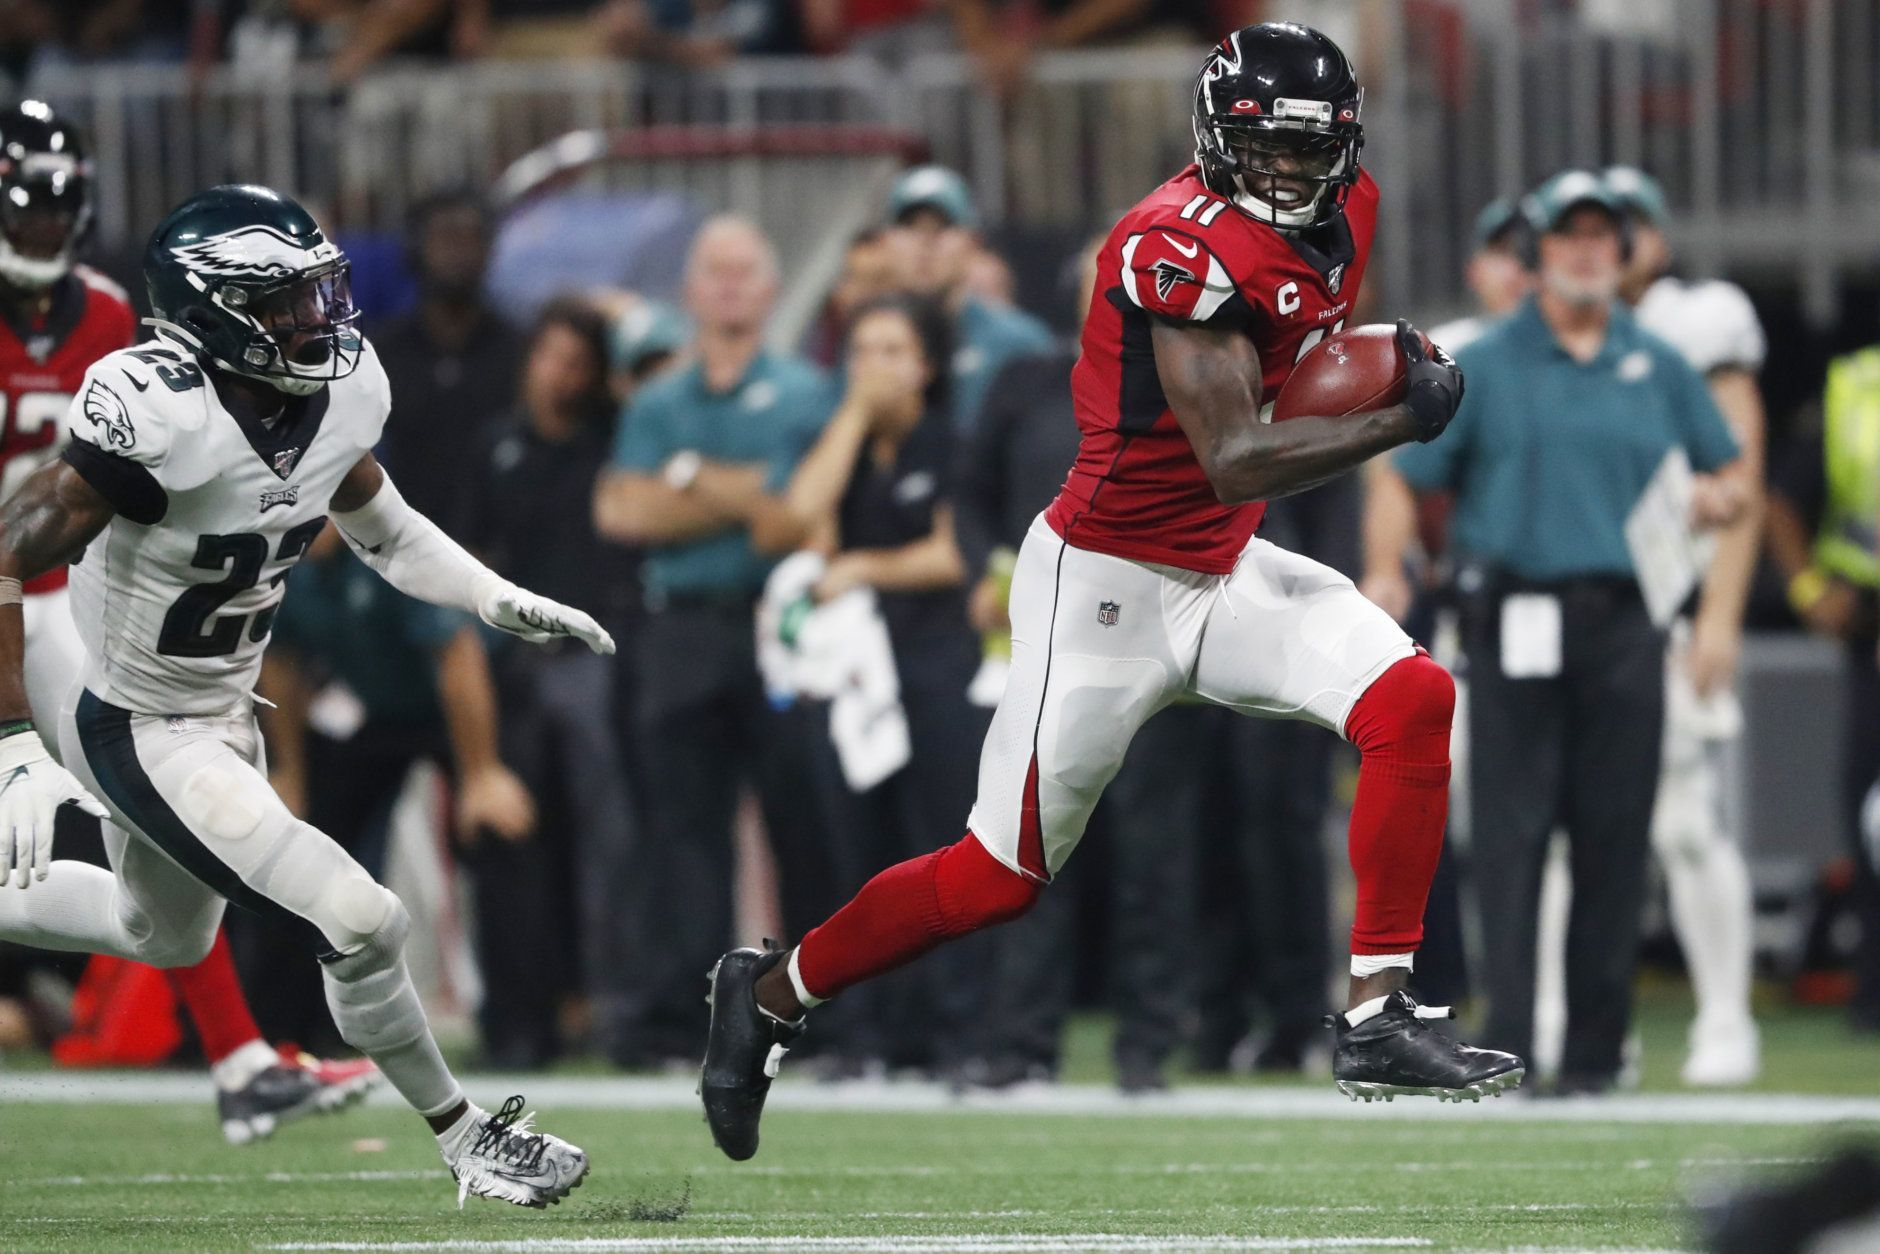 "<p><b><i>Eagles 20</i></b><br /> <b><i>Falcons 24</i></b></p> <p>On a night when DeSean Jackson&#8217;s <a href=""https://profootballtalk.nbcsports.com/2019/09/10/desean-jackson-trails-only-jerry-rice-in-career-touchdowns-50-yards-or-longer/"">considerable big-play talents</a> were missed on the prime time stage, Julio Jones stepped up in the clutch with a 54-yard touchdown to save Atlanta&#8217;s season. Think that&#8217;s hyperbolic? It&#8217;s not. The Falcons play three of their next four games on the road before hosting the Rams and Seahawks. They needed this.</p> <p>And Philly really needs the players they lost to injury in this game to be ok. Carson Wentz looked decidedly worse without DJax and Alshon Jeffery, and the second-oldest roster in the NFL doesn&#8217;t appear to have the depth to withstand multiple injuries to their skill positions.</p>"